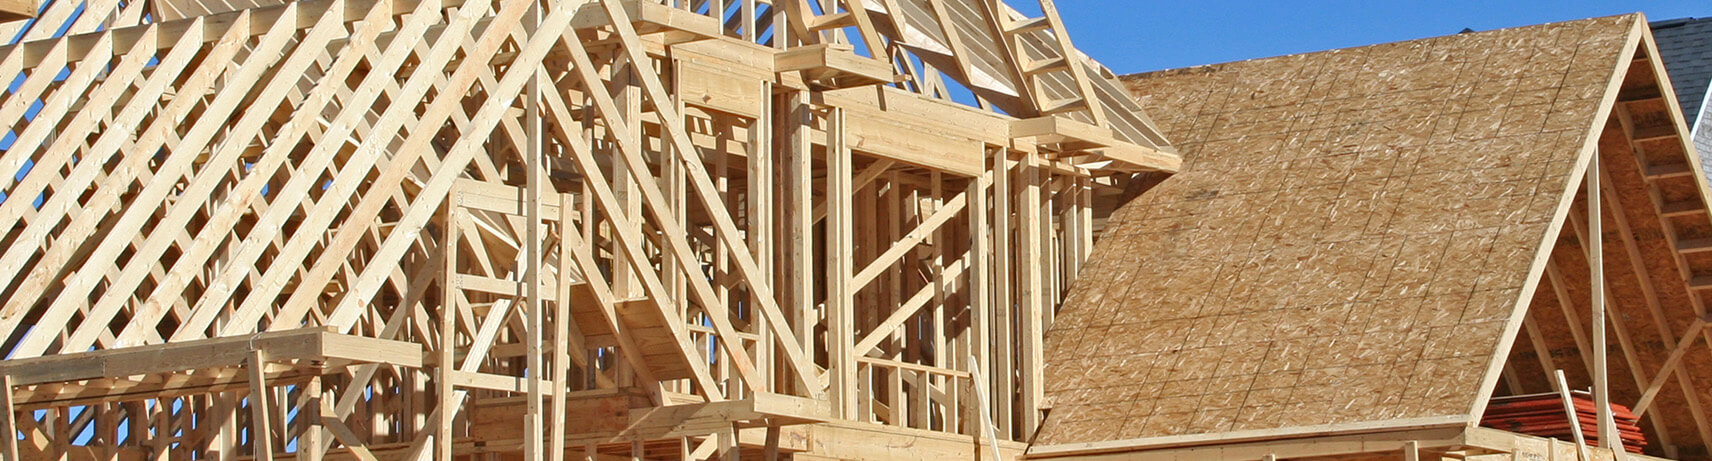 Kawartha Lakes General Contractor, Deck Builder and Home Remodeling Contractor